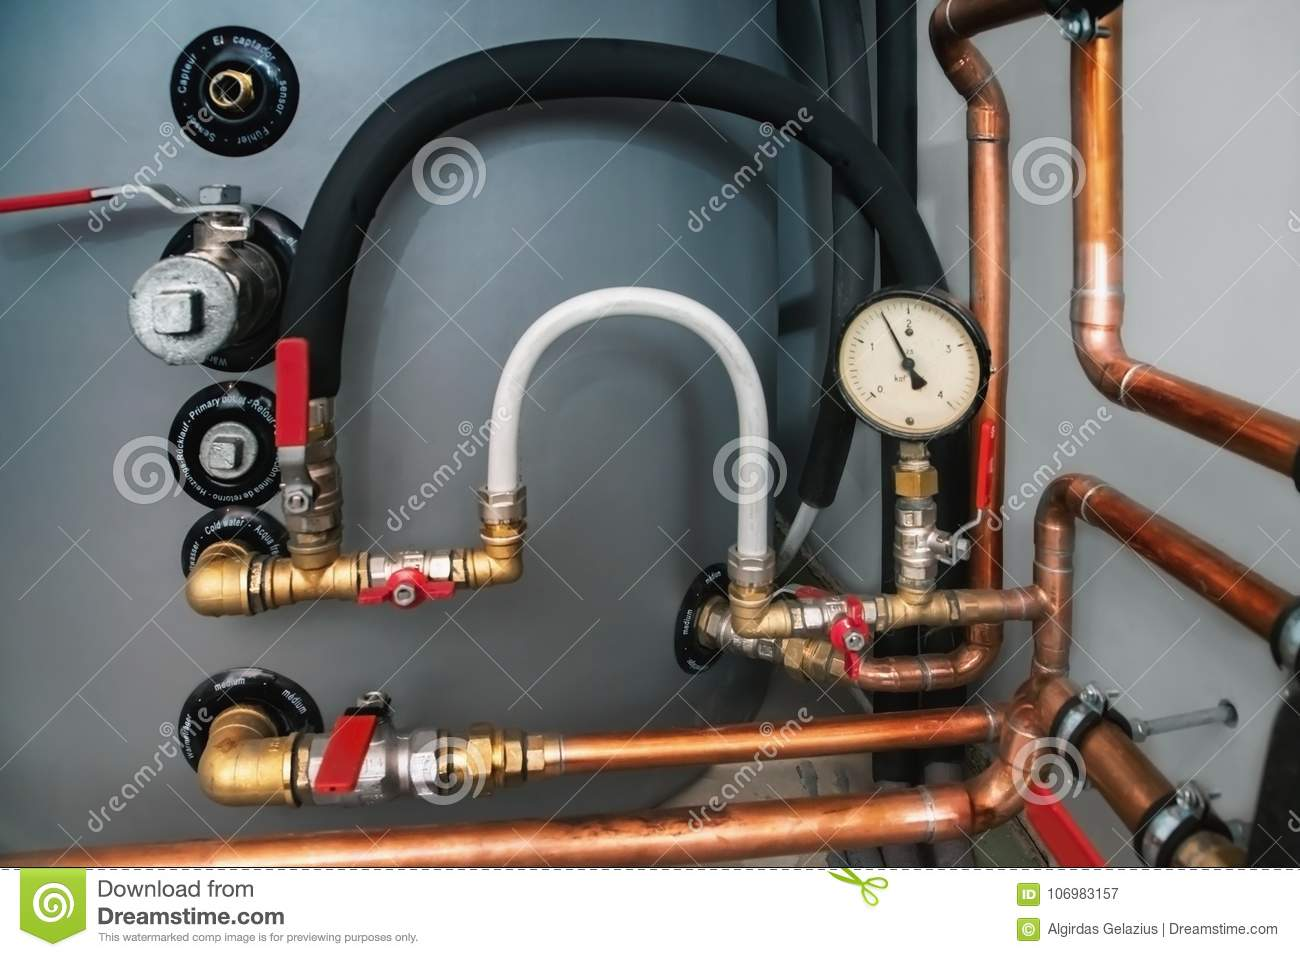 Valves Pressure Gauge And Copper Pipes In A Boiler Room Words Medium Sensor In French German And Italian Languages Phrases Primary Outlet Cold